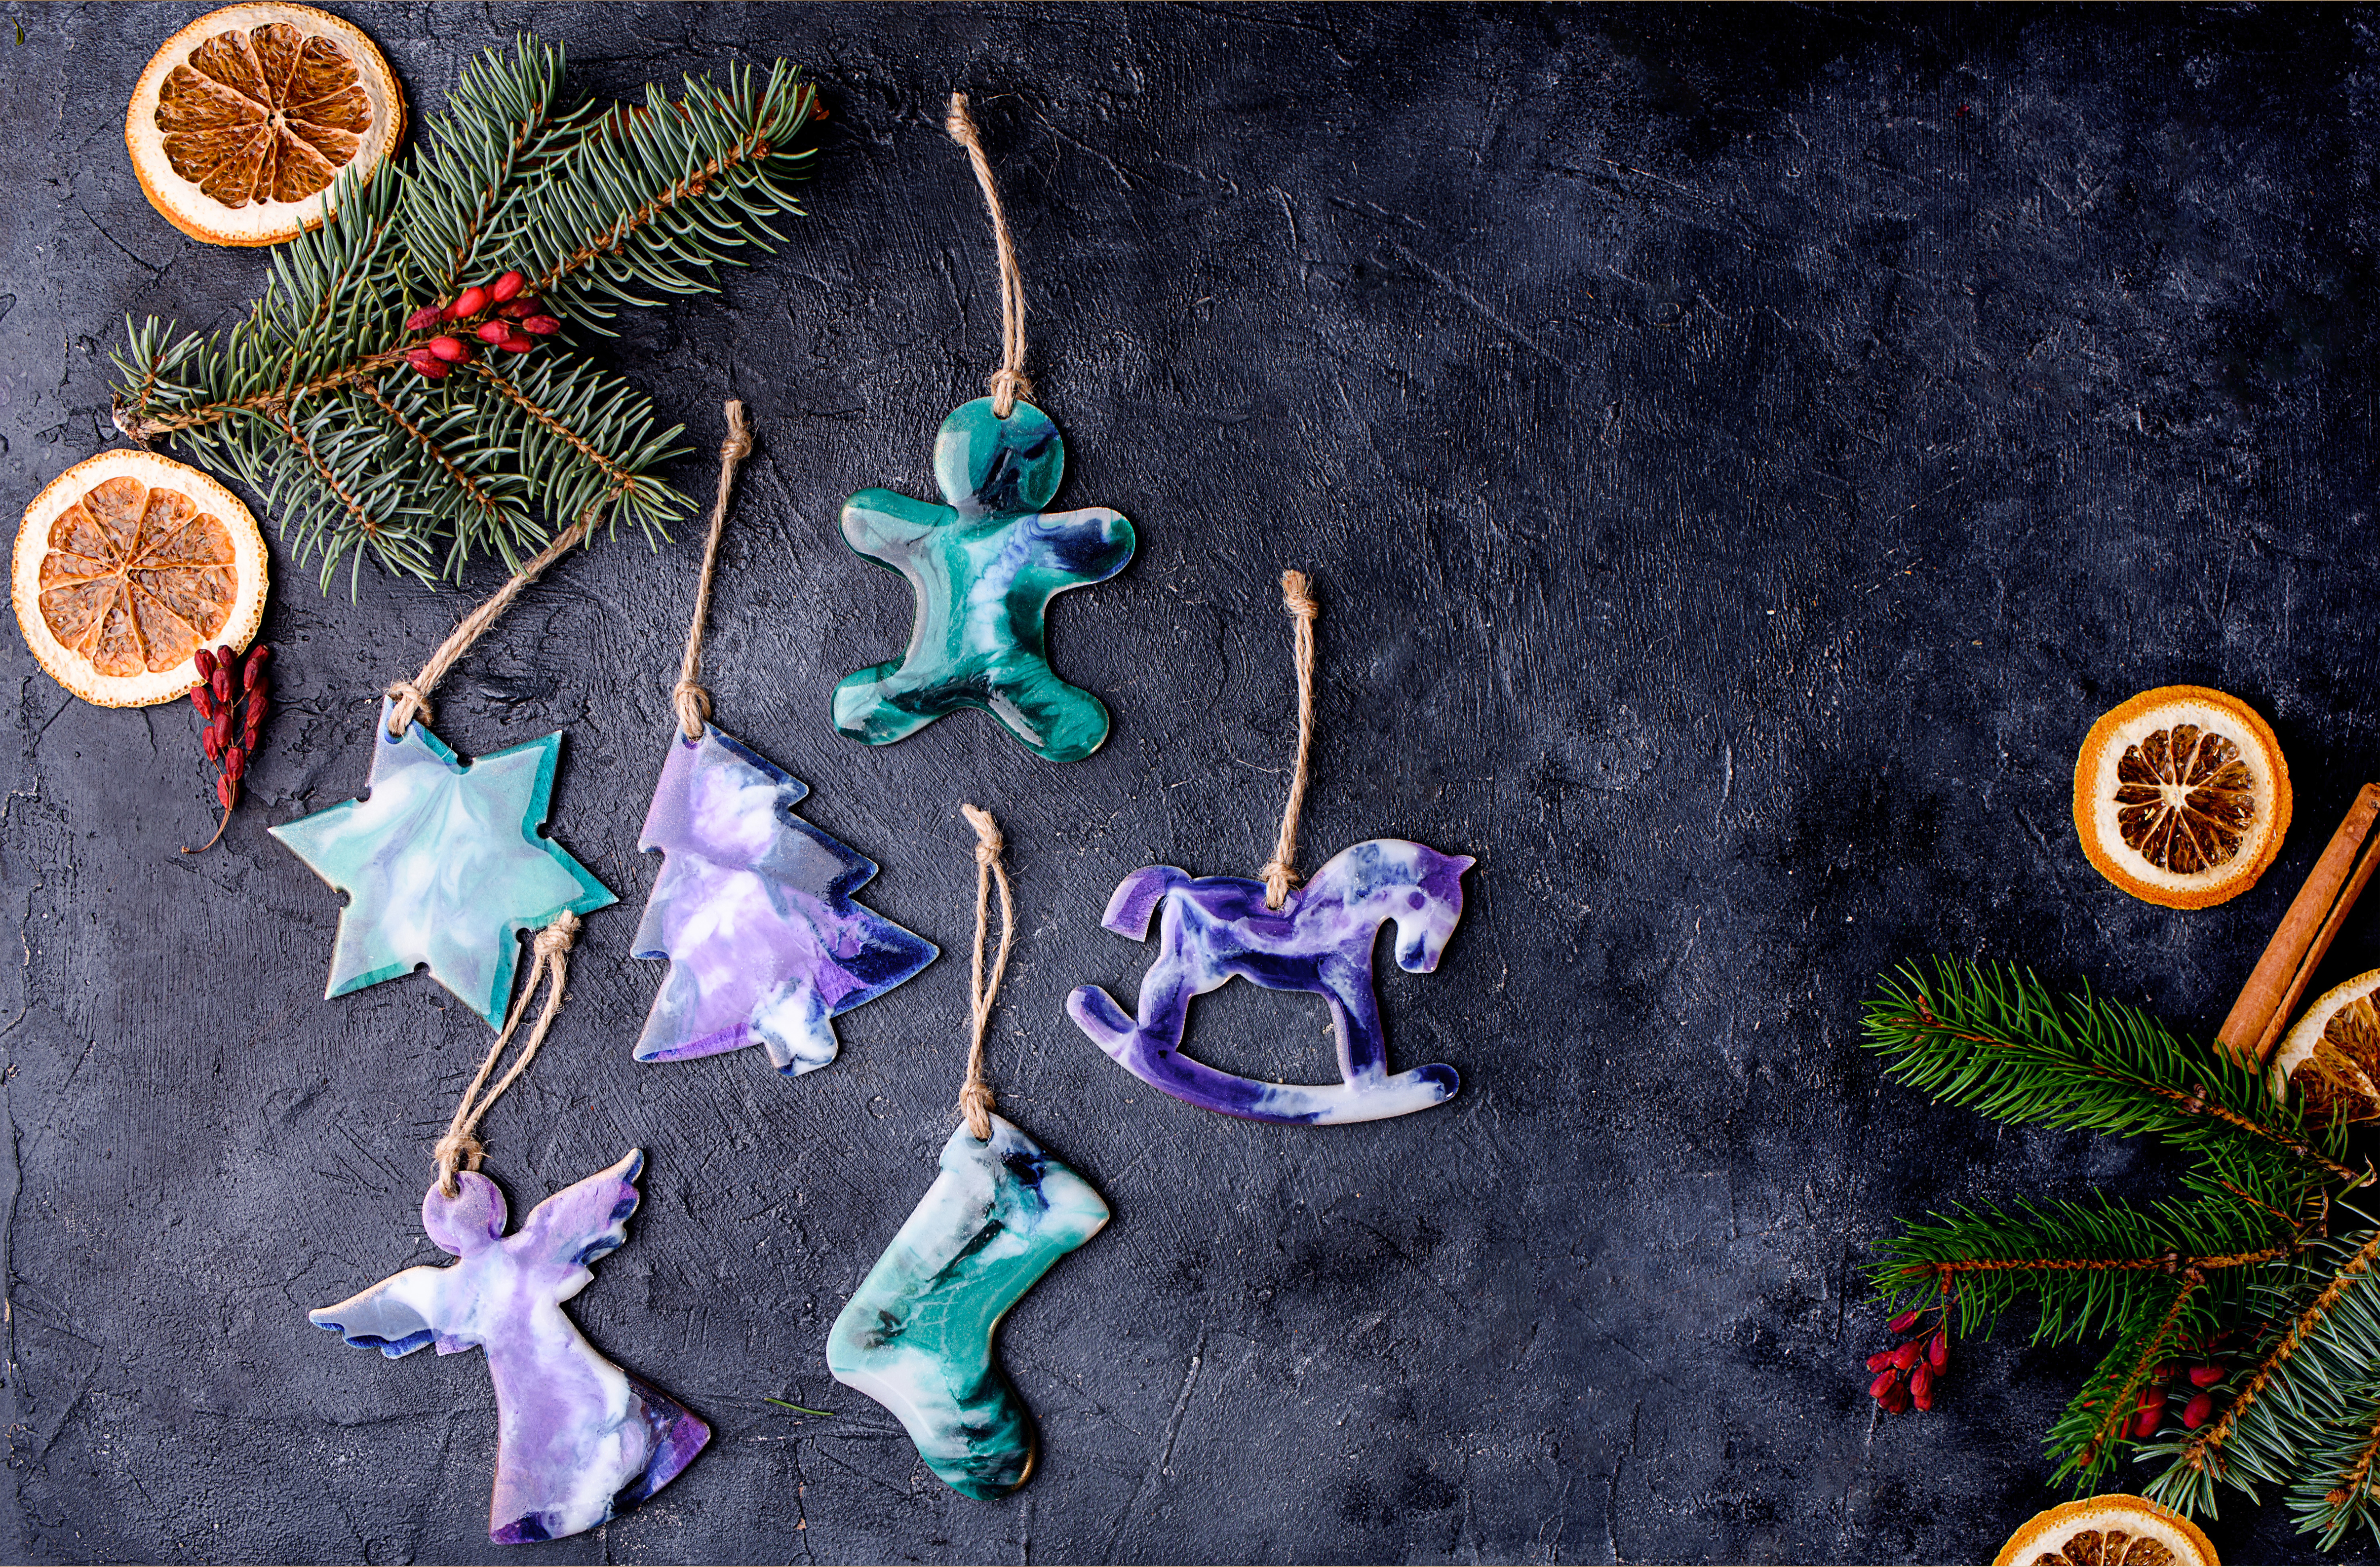 Hanging decorations made from resin